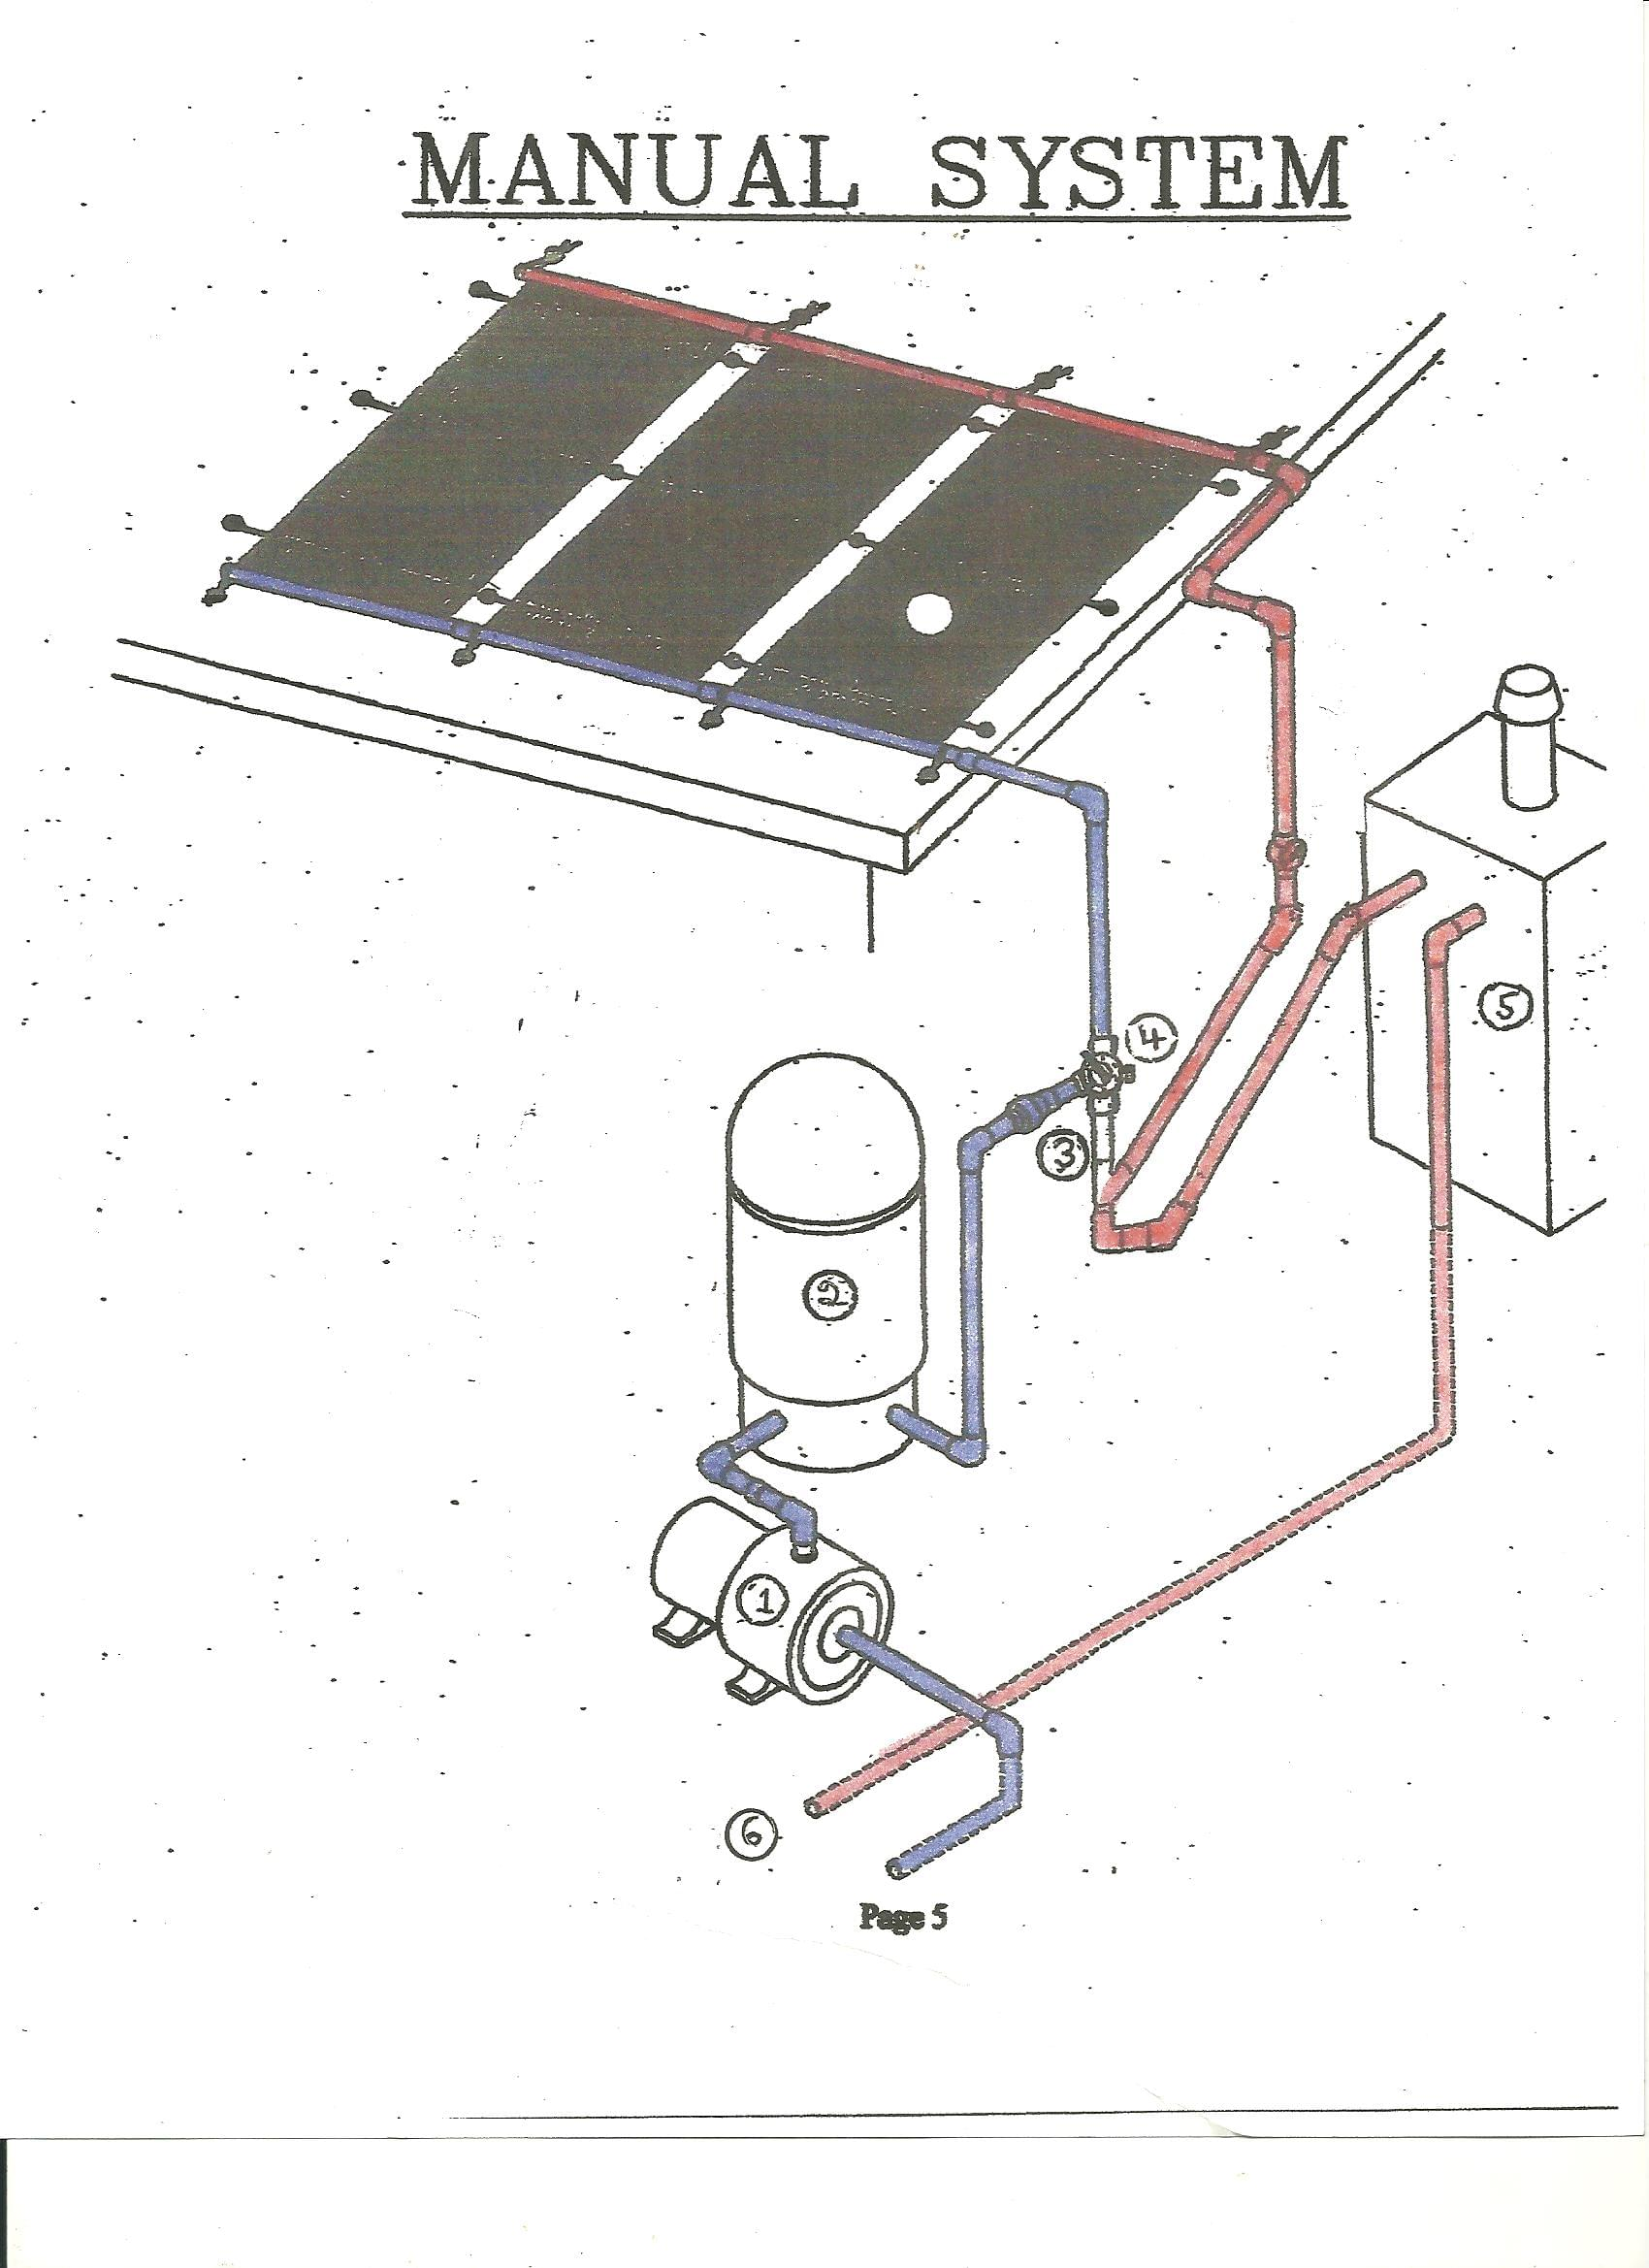 Swimming Pool Heaters. WEB MANUAL SOLAR SYSTEM. Above Ground Swimming  #424F89